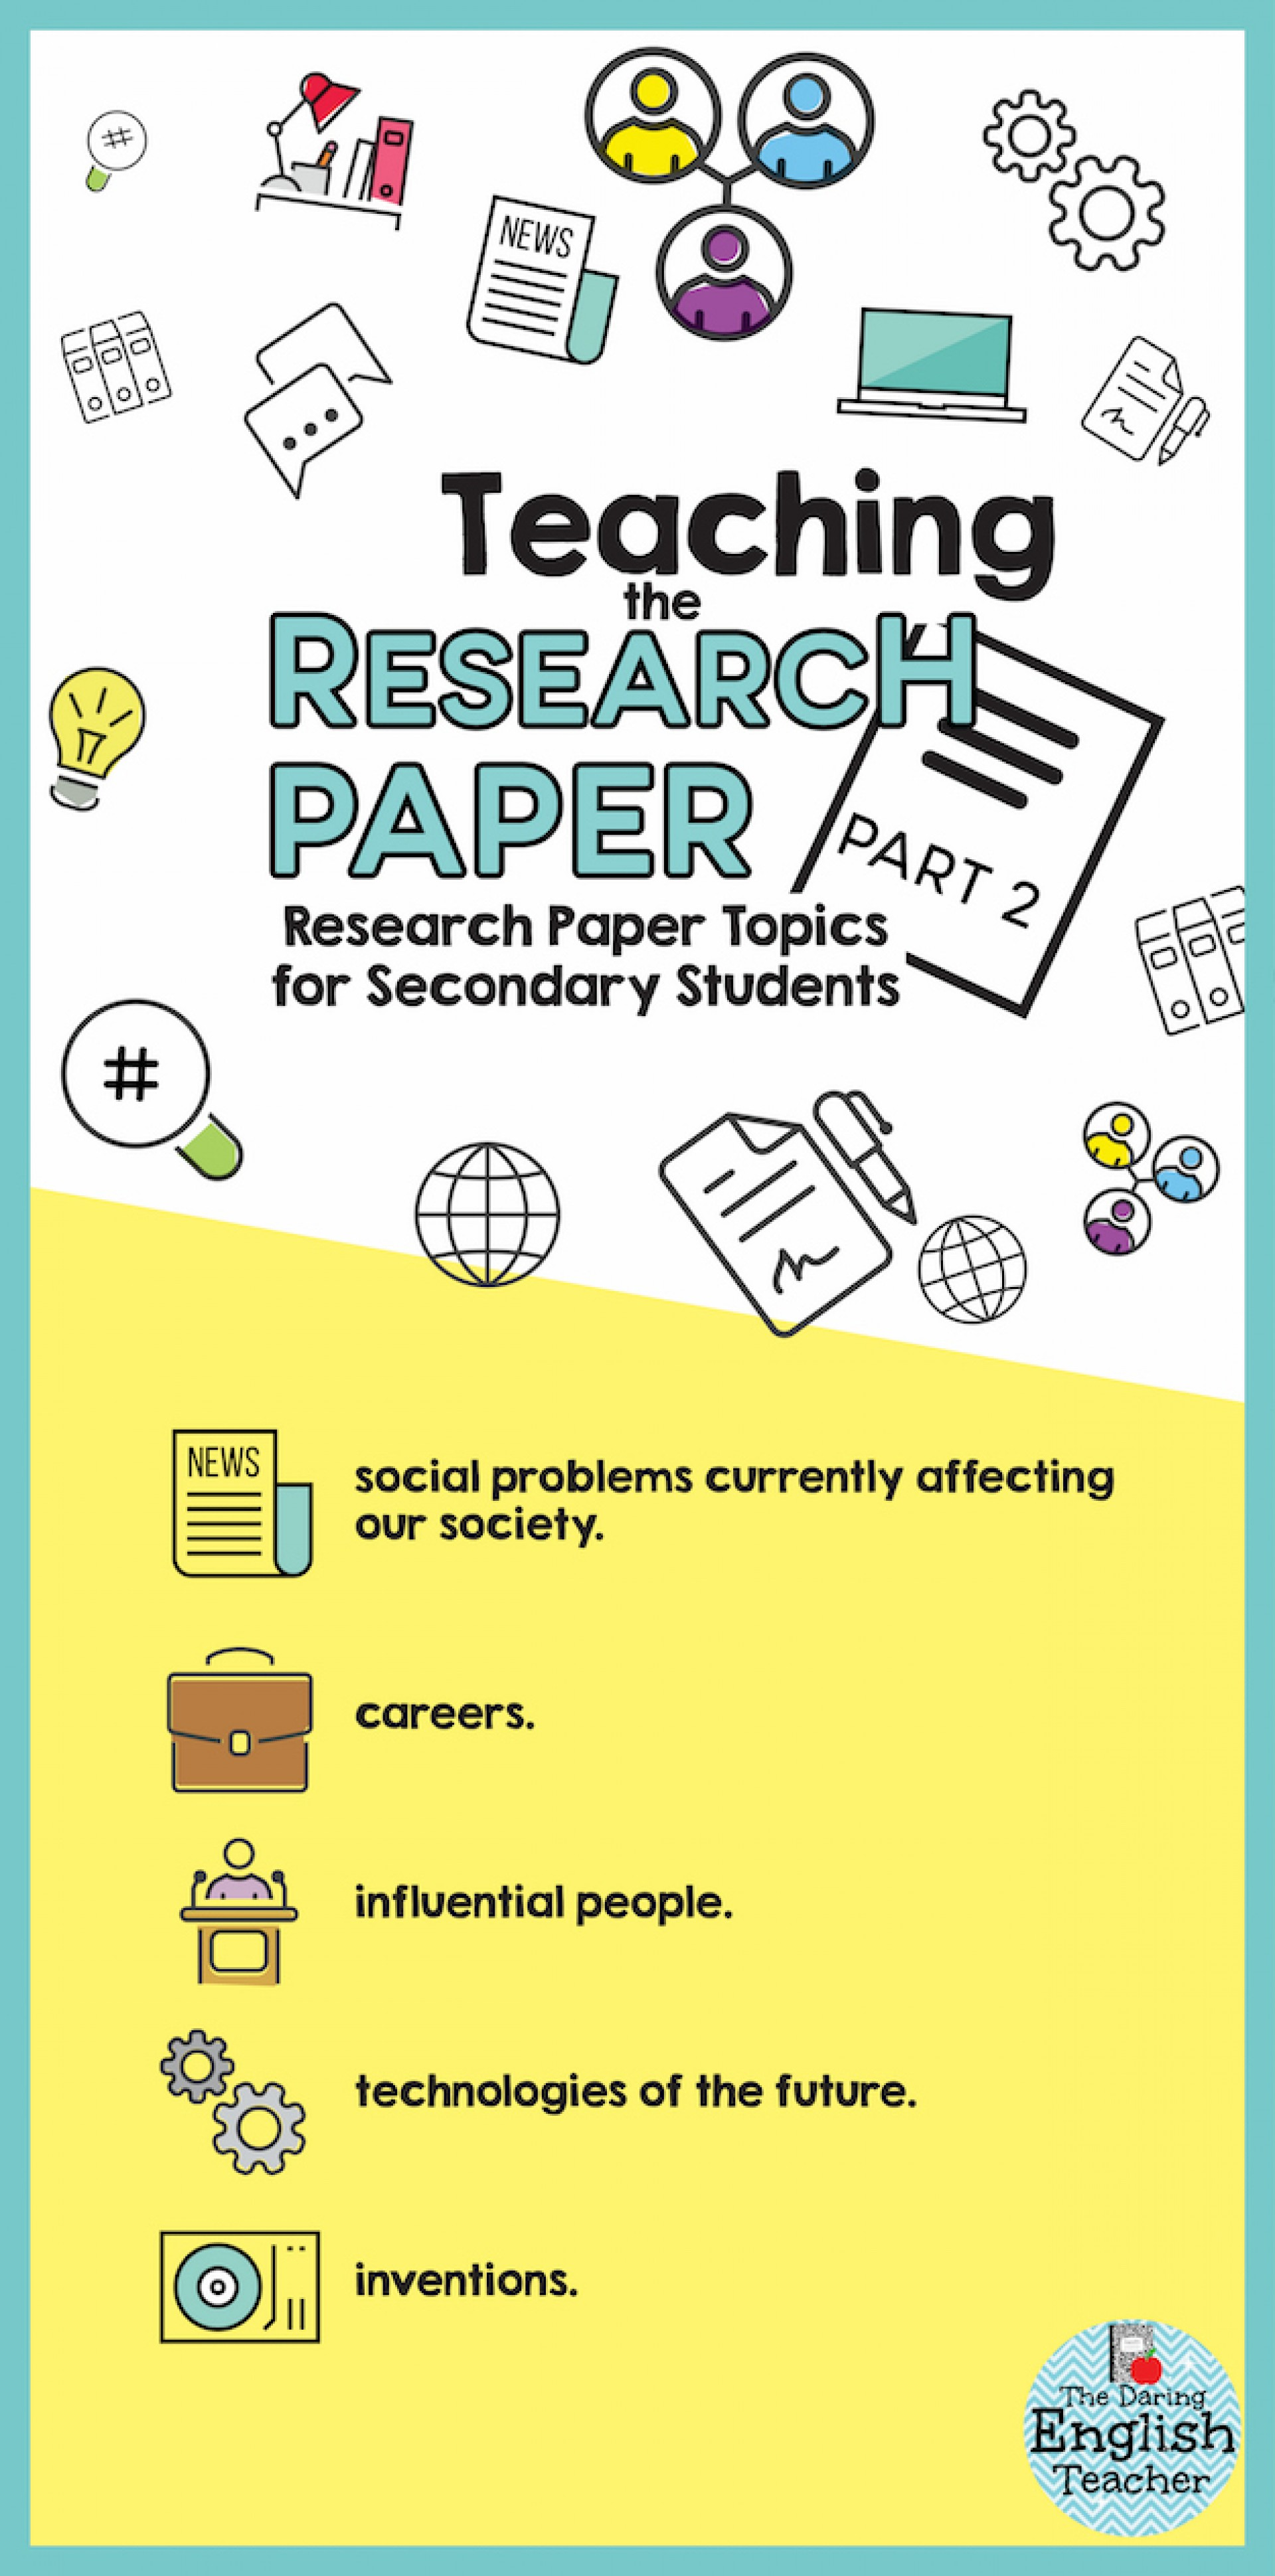 012 Research Paper Infographic2bp22b2 Topics High Incredible School Argumentative Biology Physics 1920